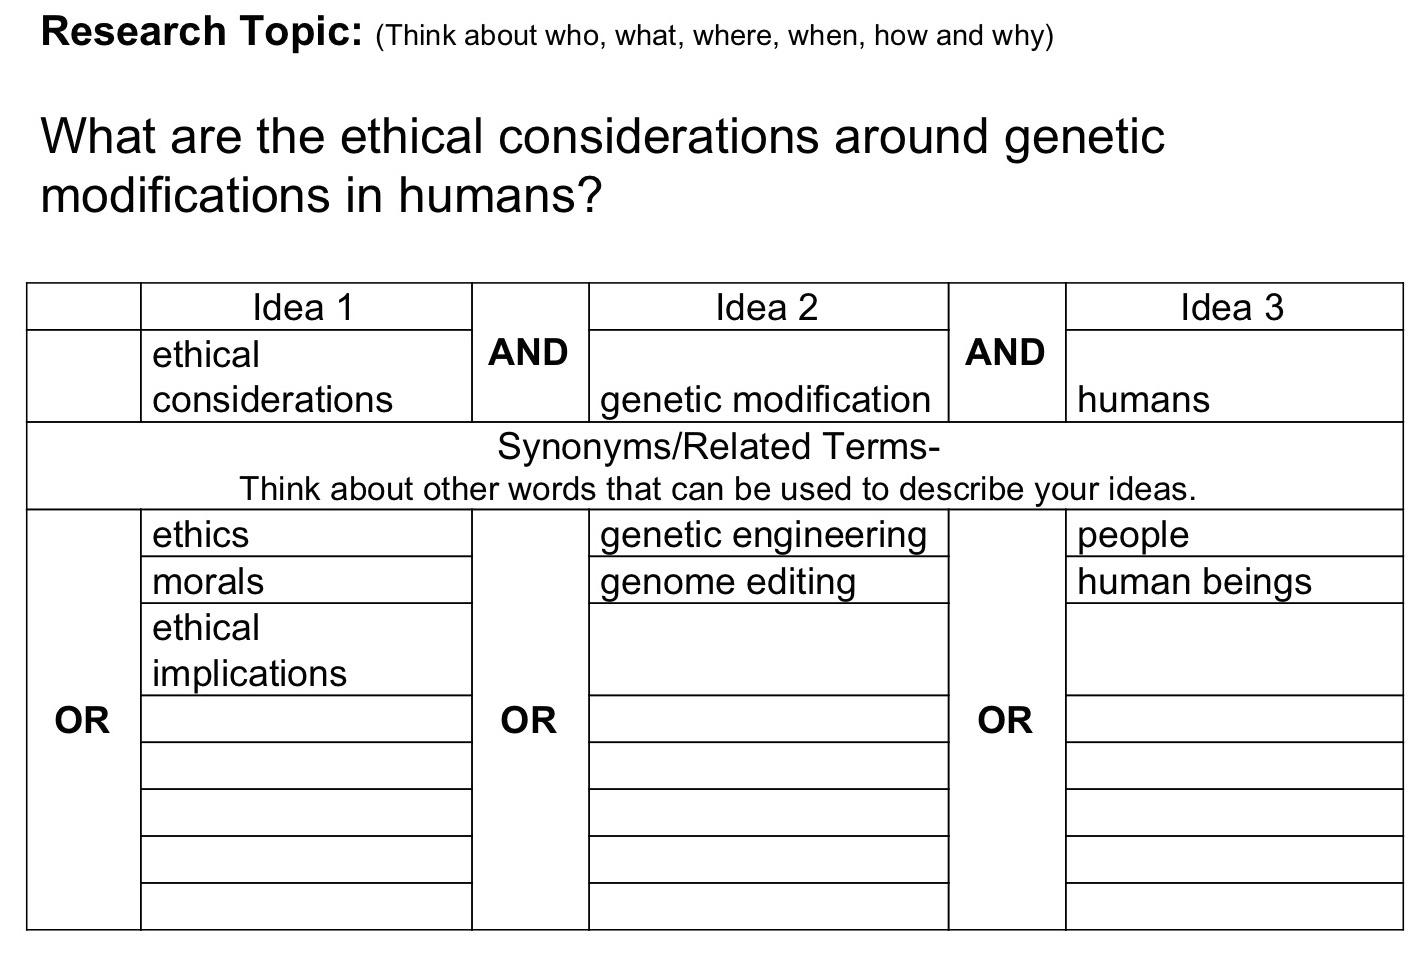 "The Keyword Matrix is a table that has three columns labeled ""Idea 1,"" ""Idea 2,"" and ""Idea 3"" respectively. Enter one of your main ideas in the first row of each column. In our example, ""ethical considerations"" goes in the Idea 1 column, ""genetic modification"" goes in the Idea 2 column, and ""humans"" goes in the Idea 3 column. Then enter the synonyms and related terms for each idea in the corresponding column, with each term in a separate row. For example, ""ethics,"" ""morals,"" and ""ethical implications"" go in the Idea 1 column. ""Genetic engineering"" and ""genome editing"" go in the Idea 2 column. ""People"" and ""human beings"" go in the Idea 3 column. Between each column, there is an ""AND."" Between each row, there is an ""OR."""